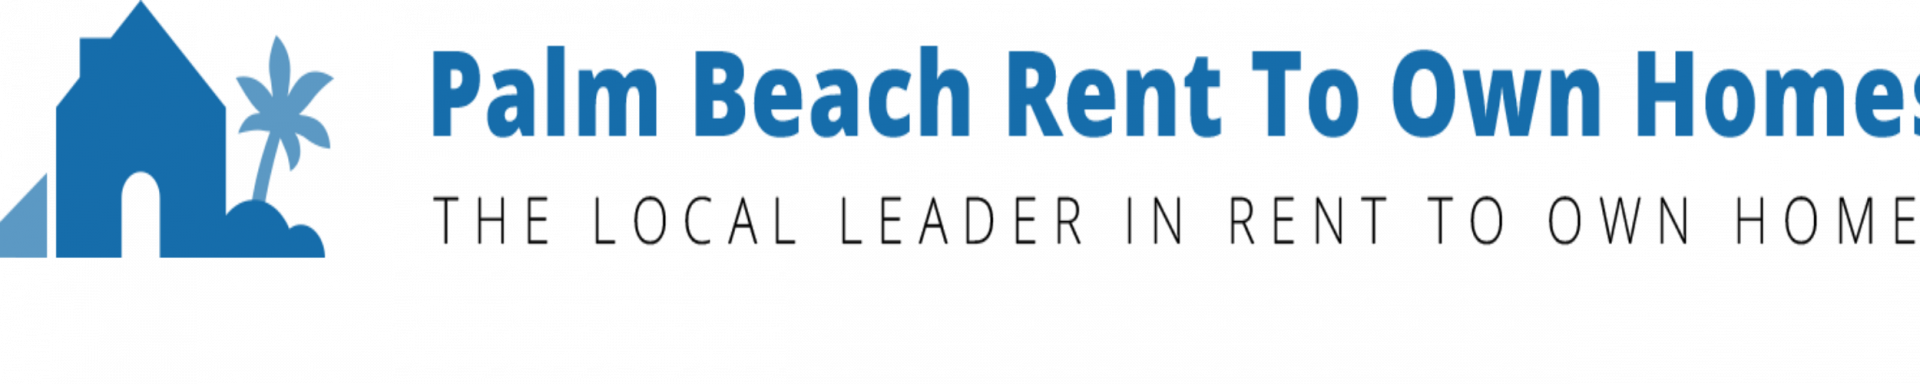 Palm Beach Rent To Own Homes logo